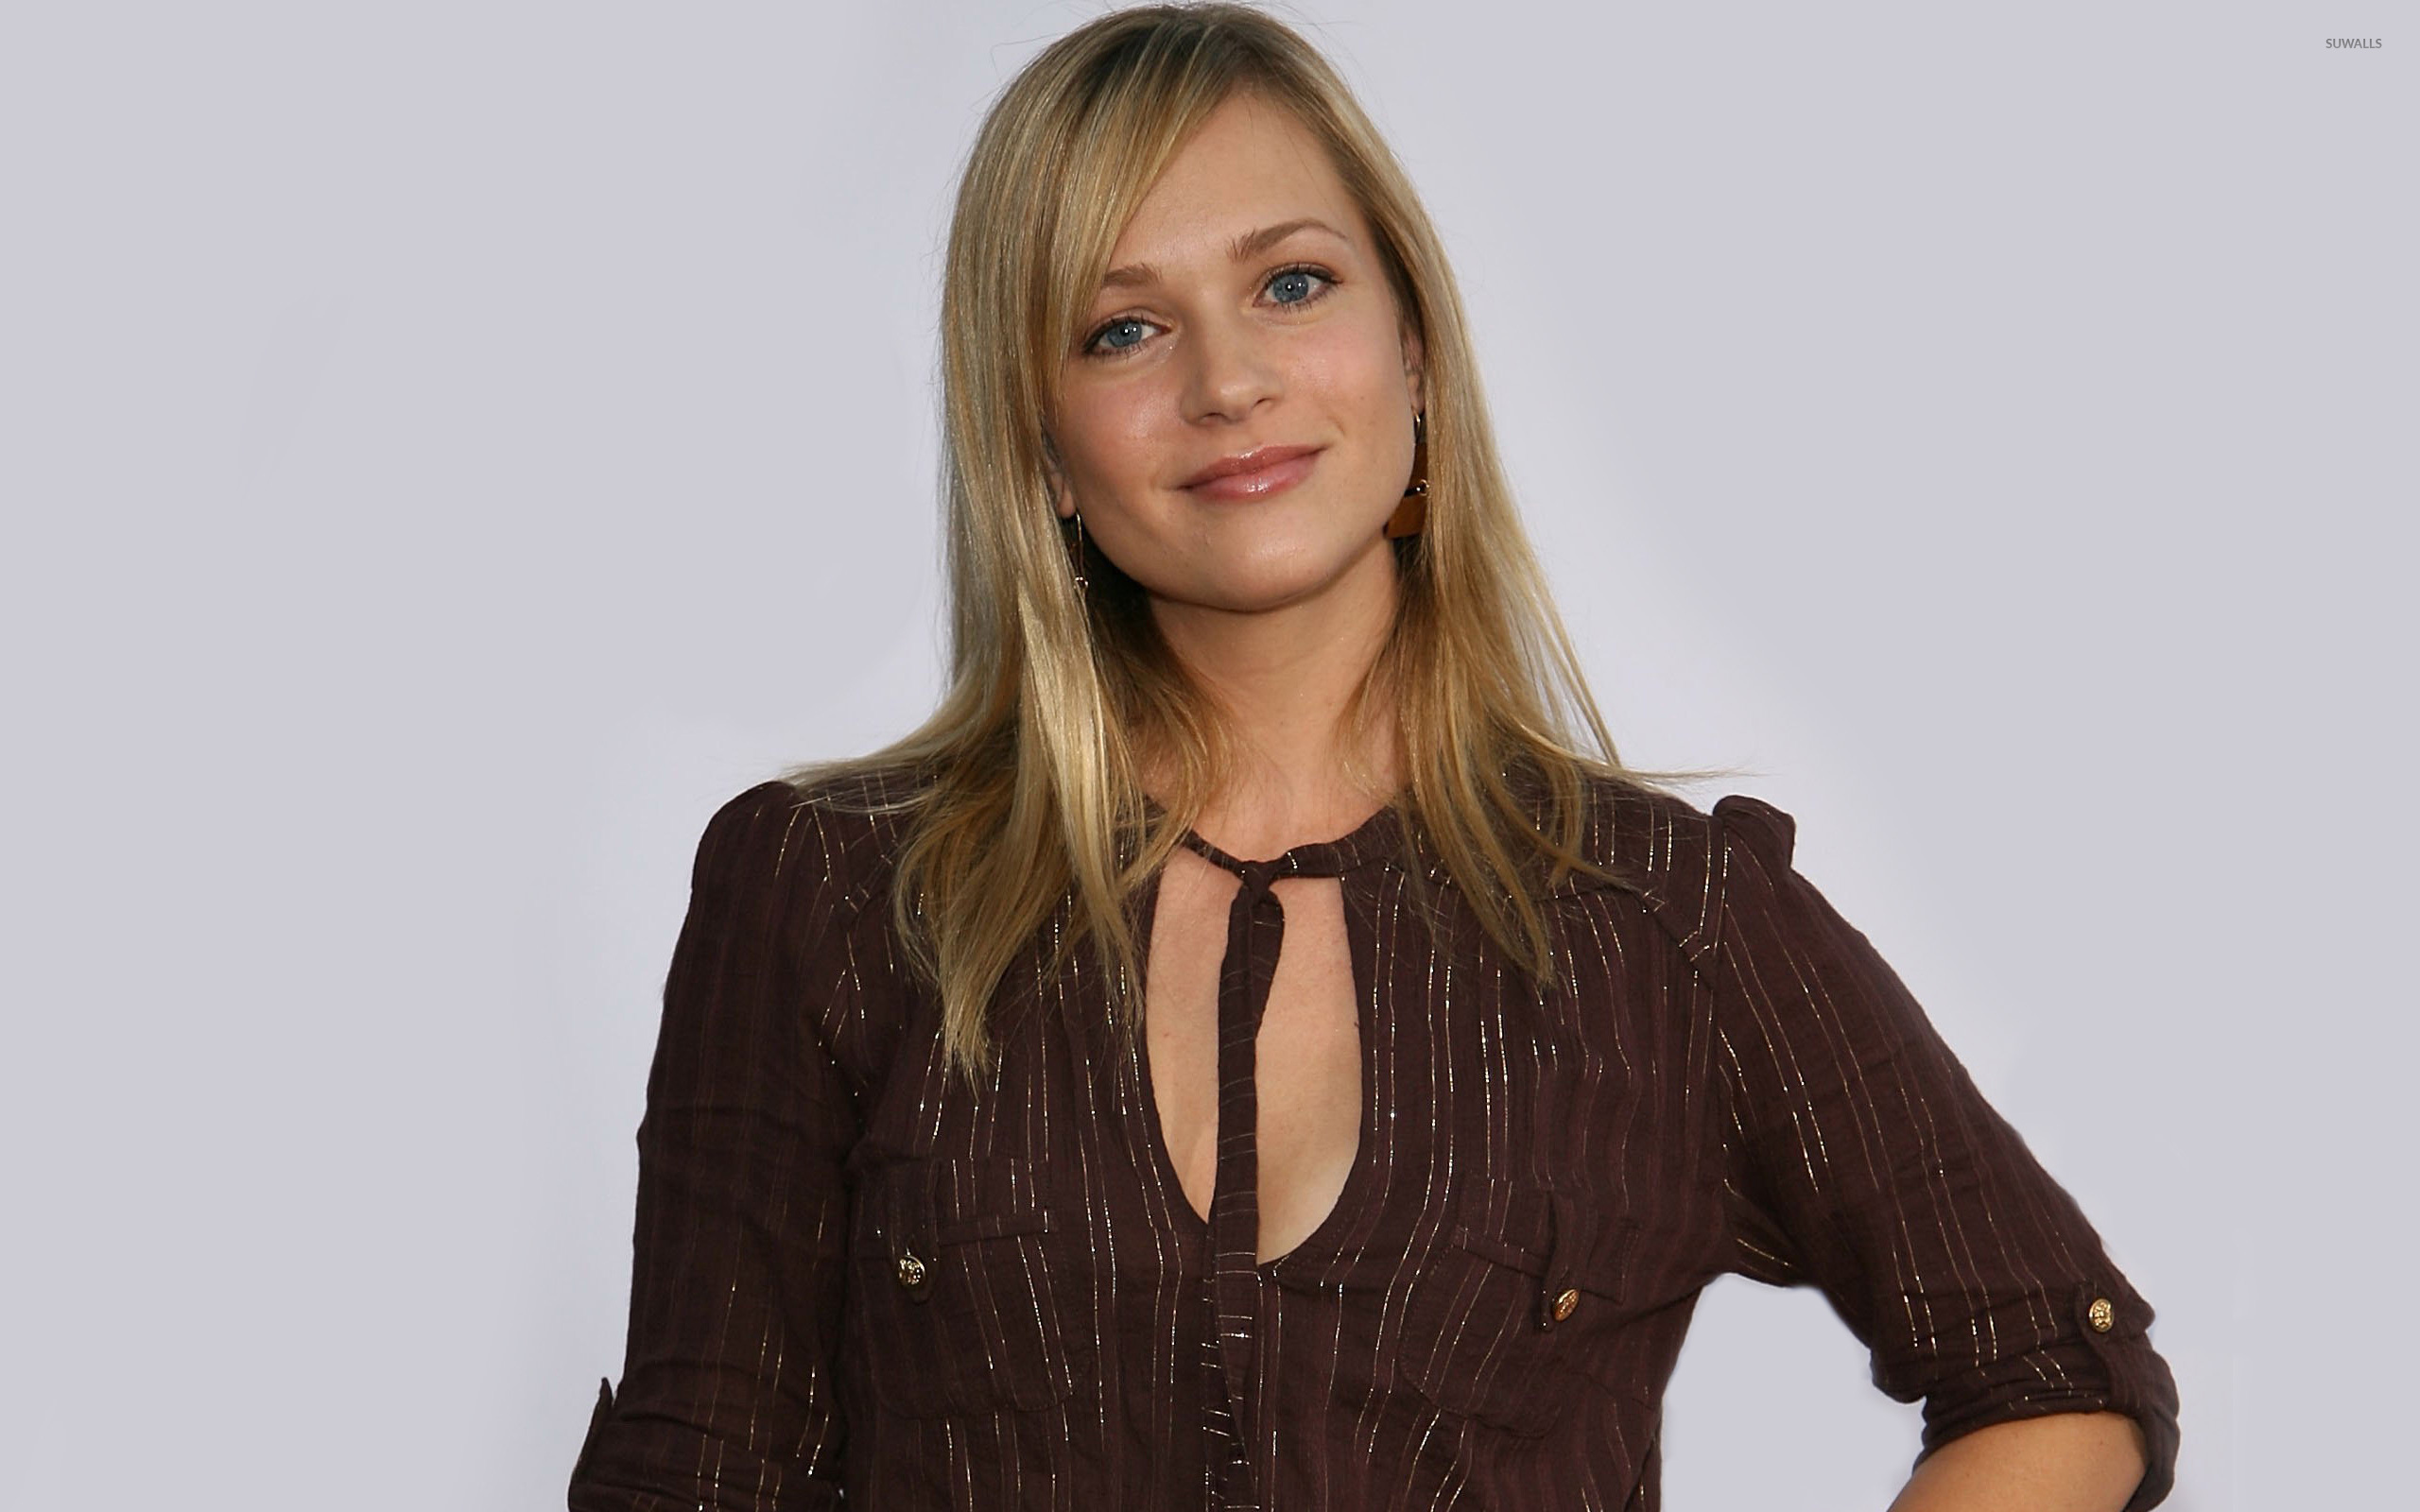 2560x1600 - A.J. Cook Wallpapers 8